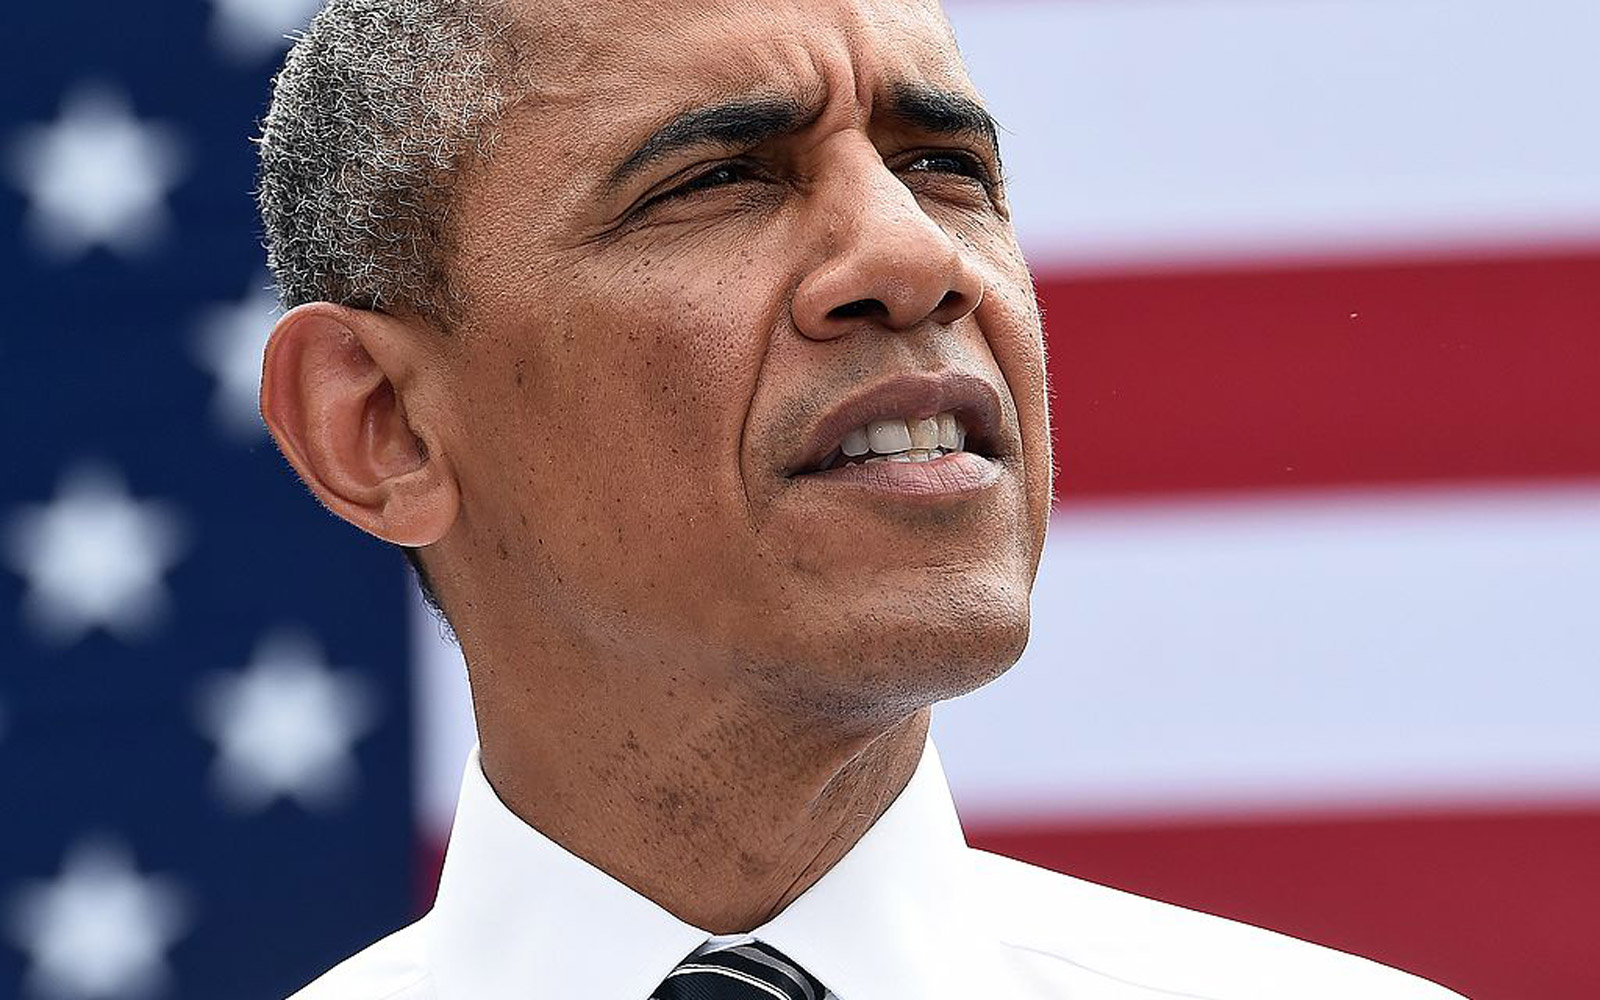 Obama's Response to the Charlottesville Violence Becomes the Most Liked Tweet of All Time